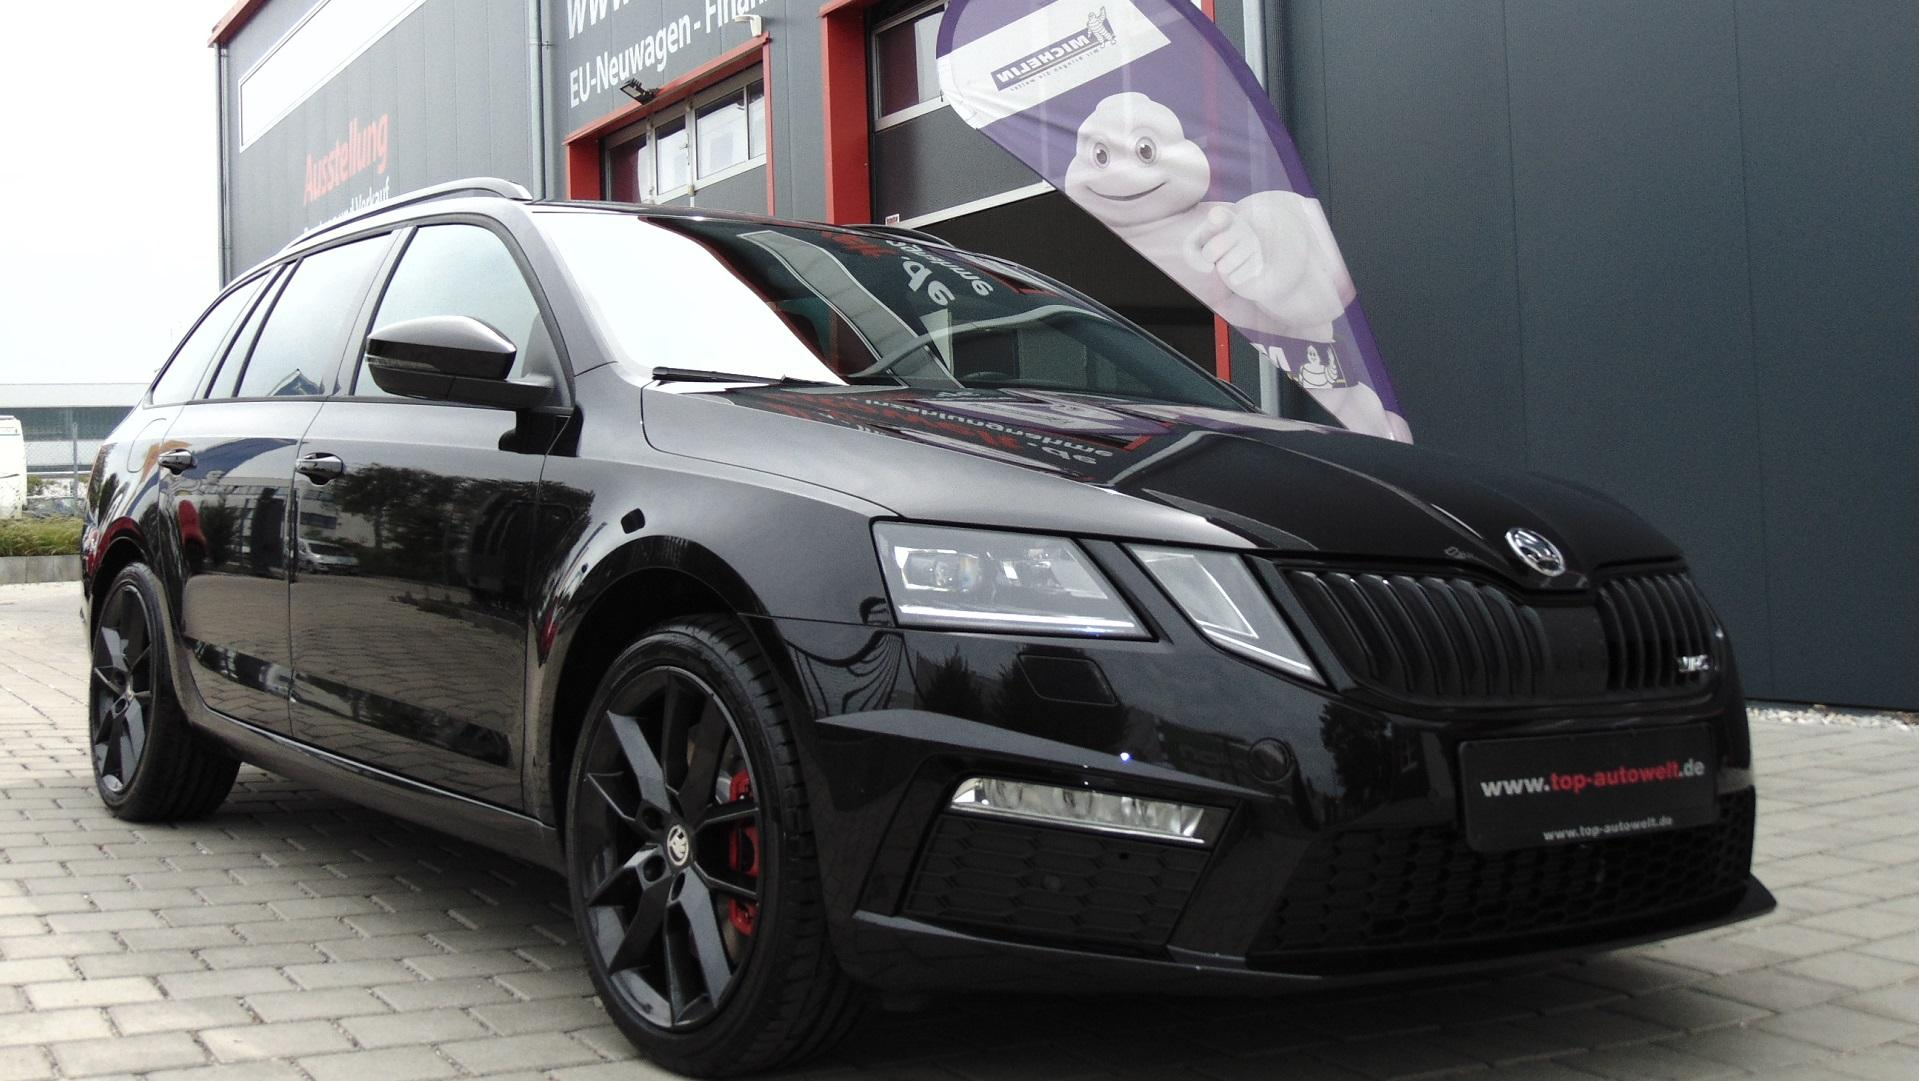 skoda octavia rs combi euro6d temp 2 0 tsi 245 ps led. Black Bedroom Furniture Sets. Home Design Ideas